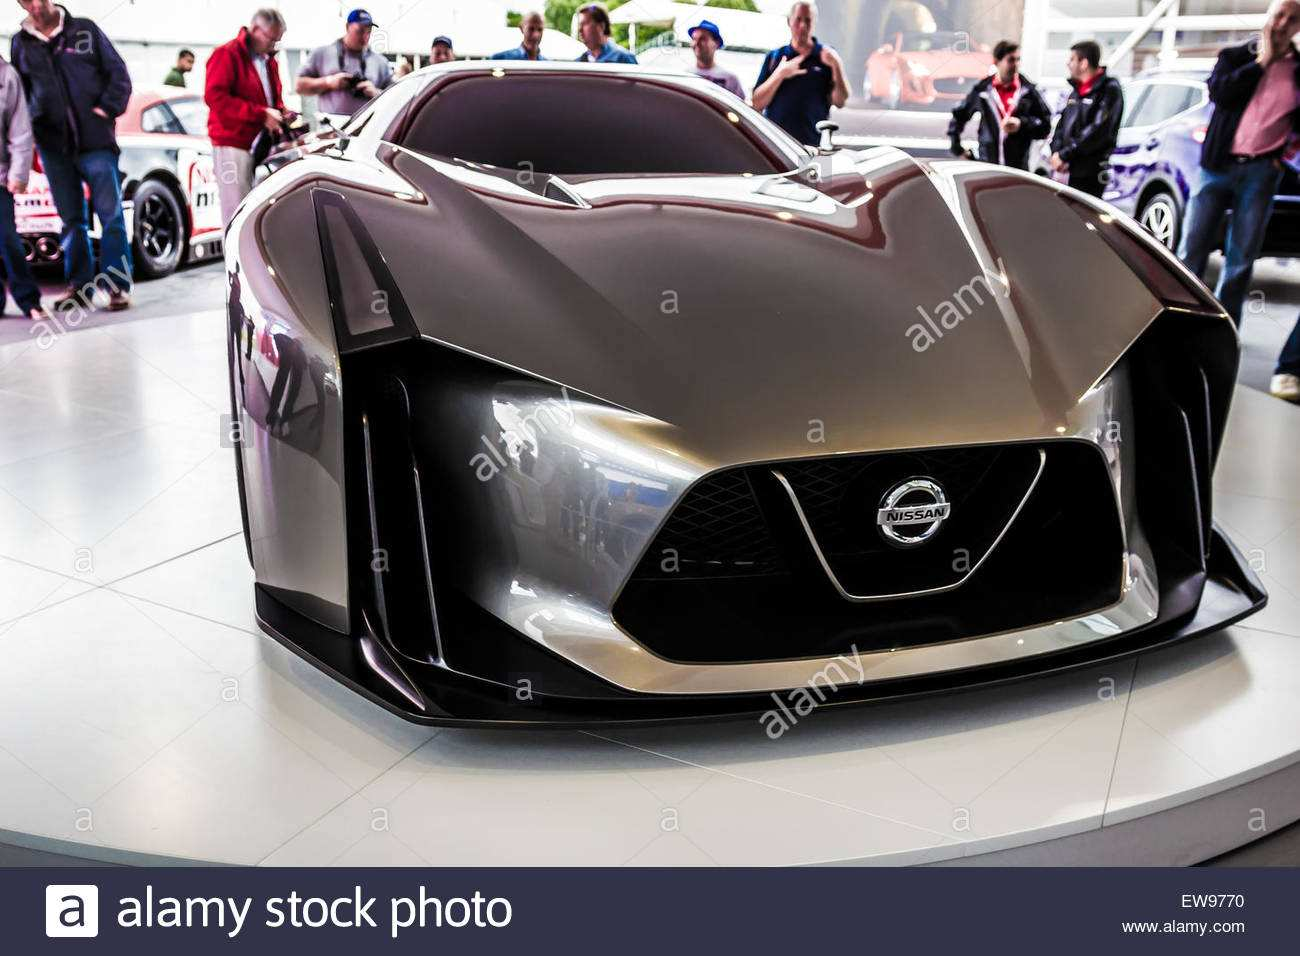 39 Gallery of Nissan Concept 2020 Gran Turismo Configurations by Nissan Concept 2020 Gran Turismo